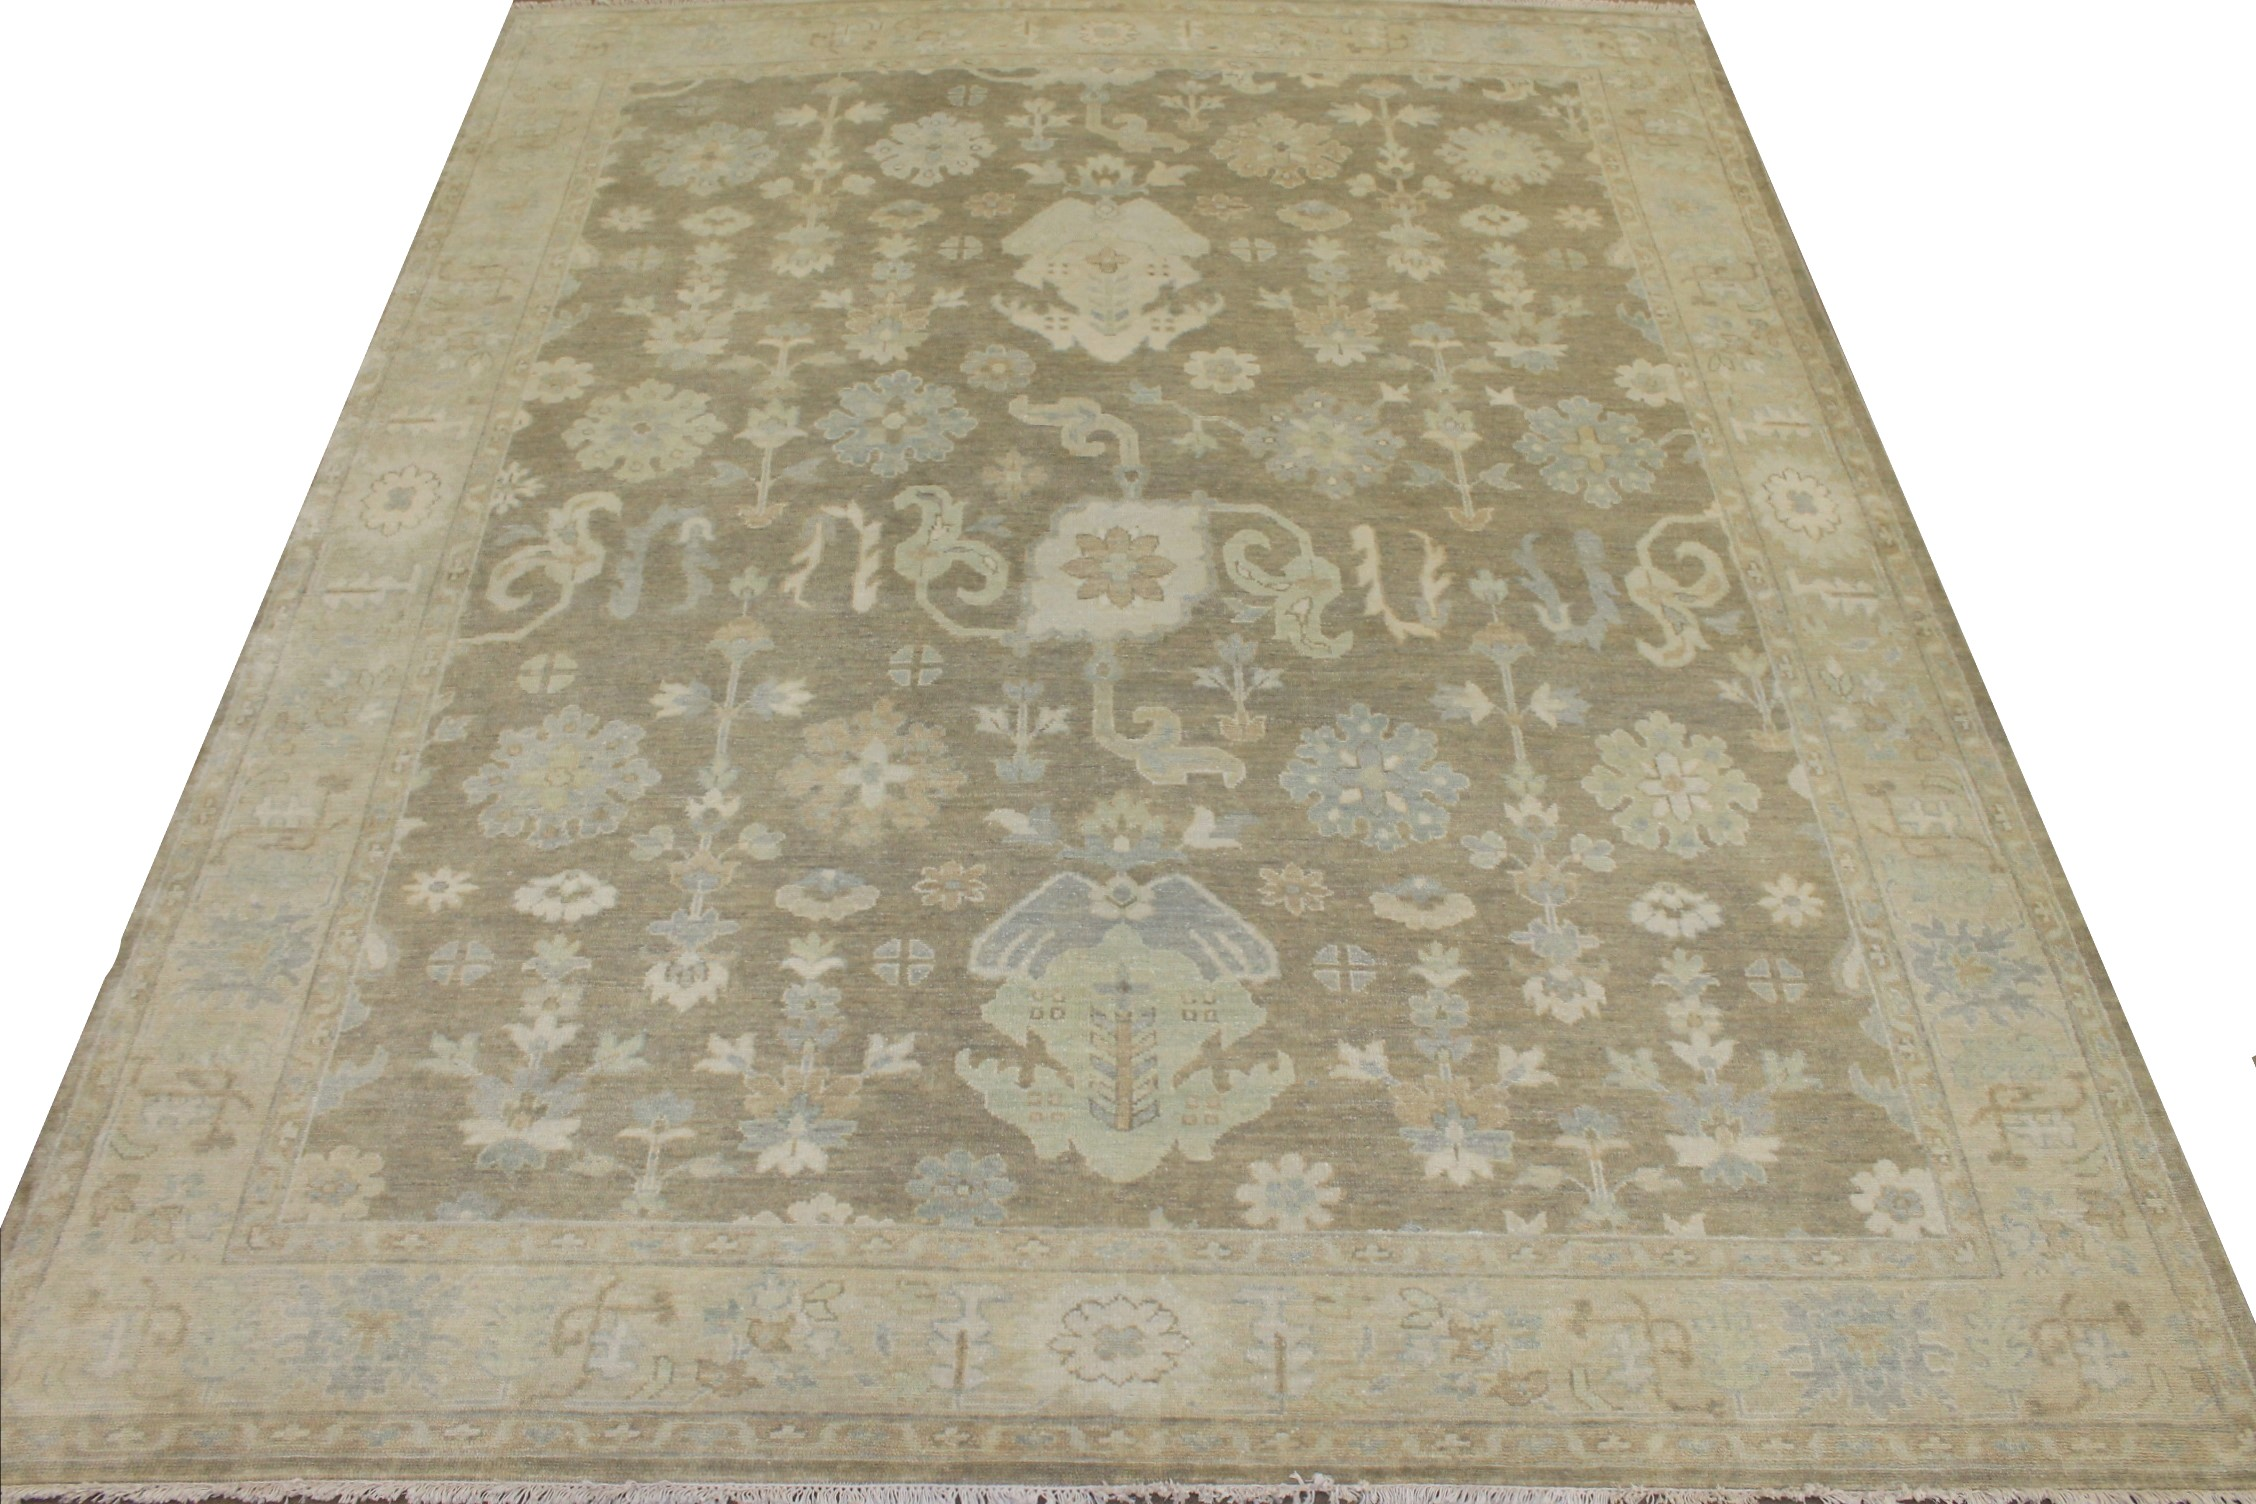 8x10 Oushak Hand Knotted Wool Area Rug - MR025554